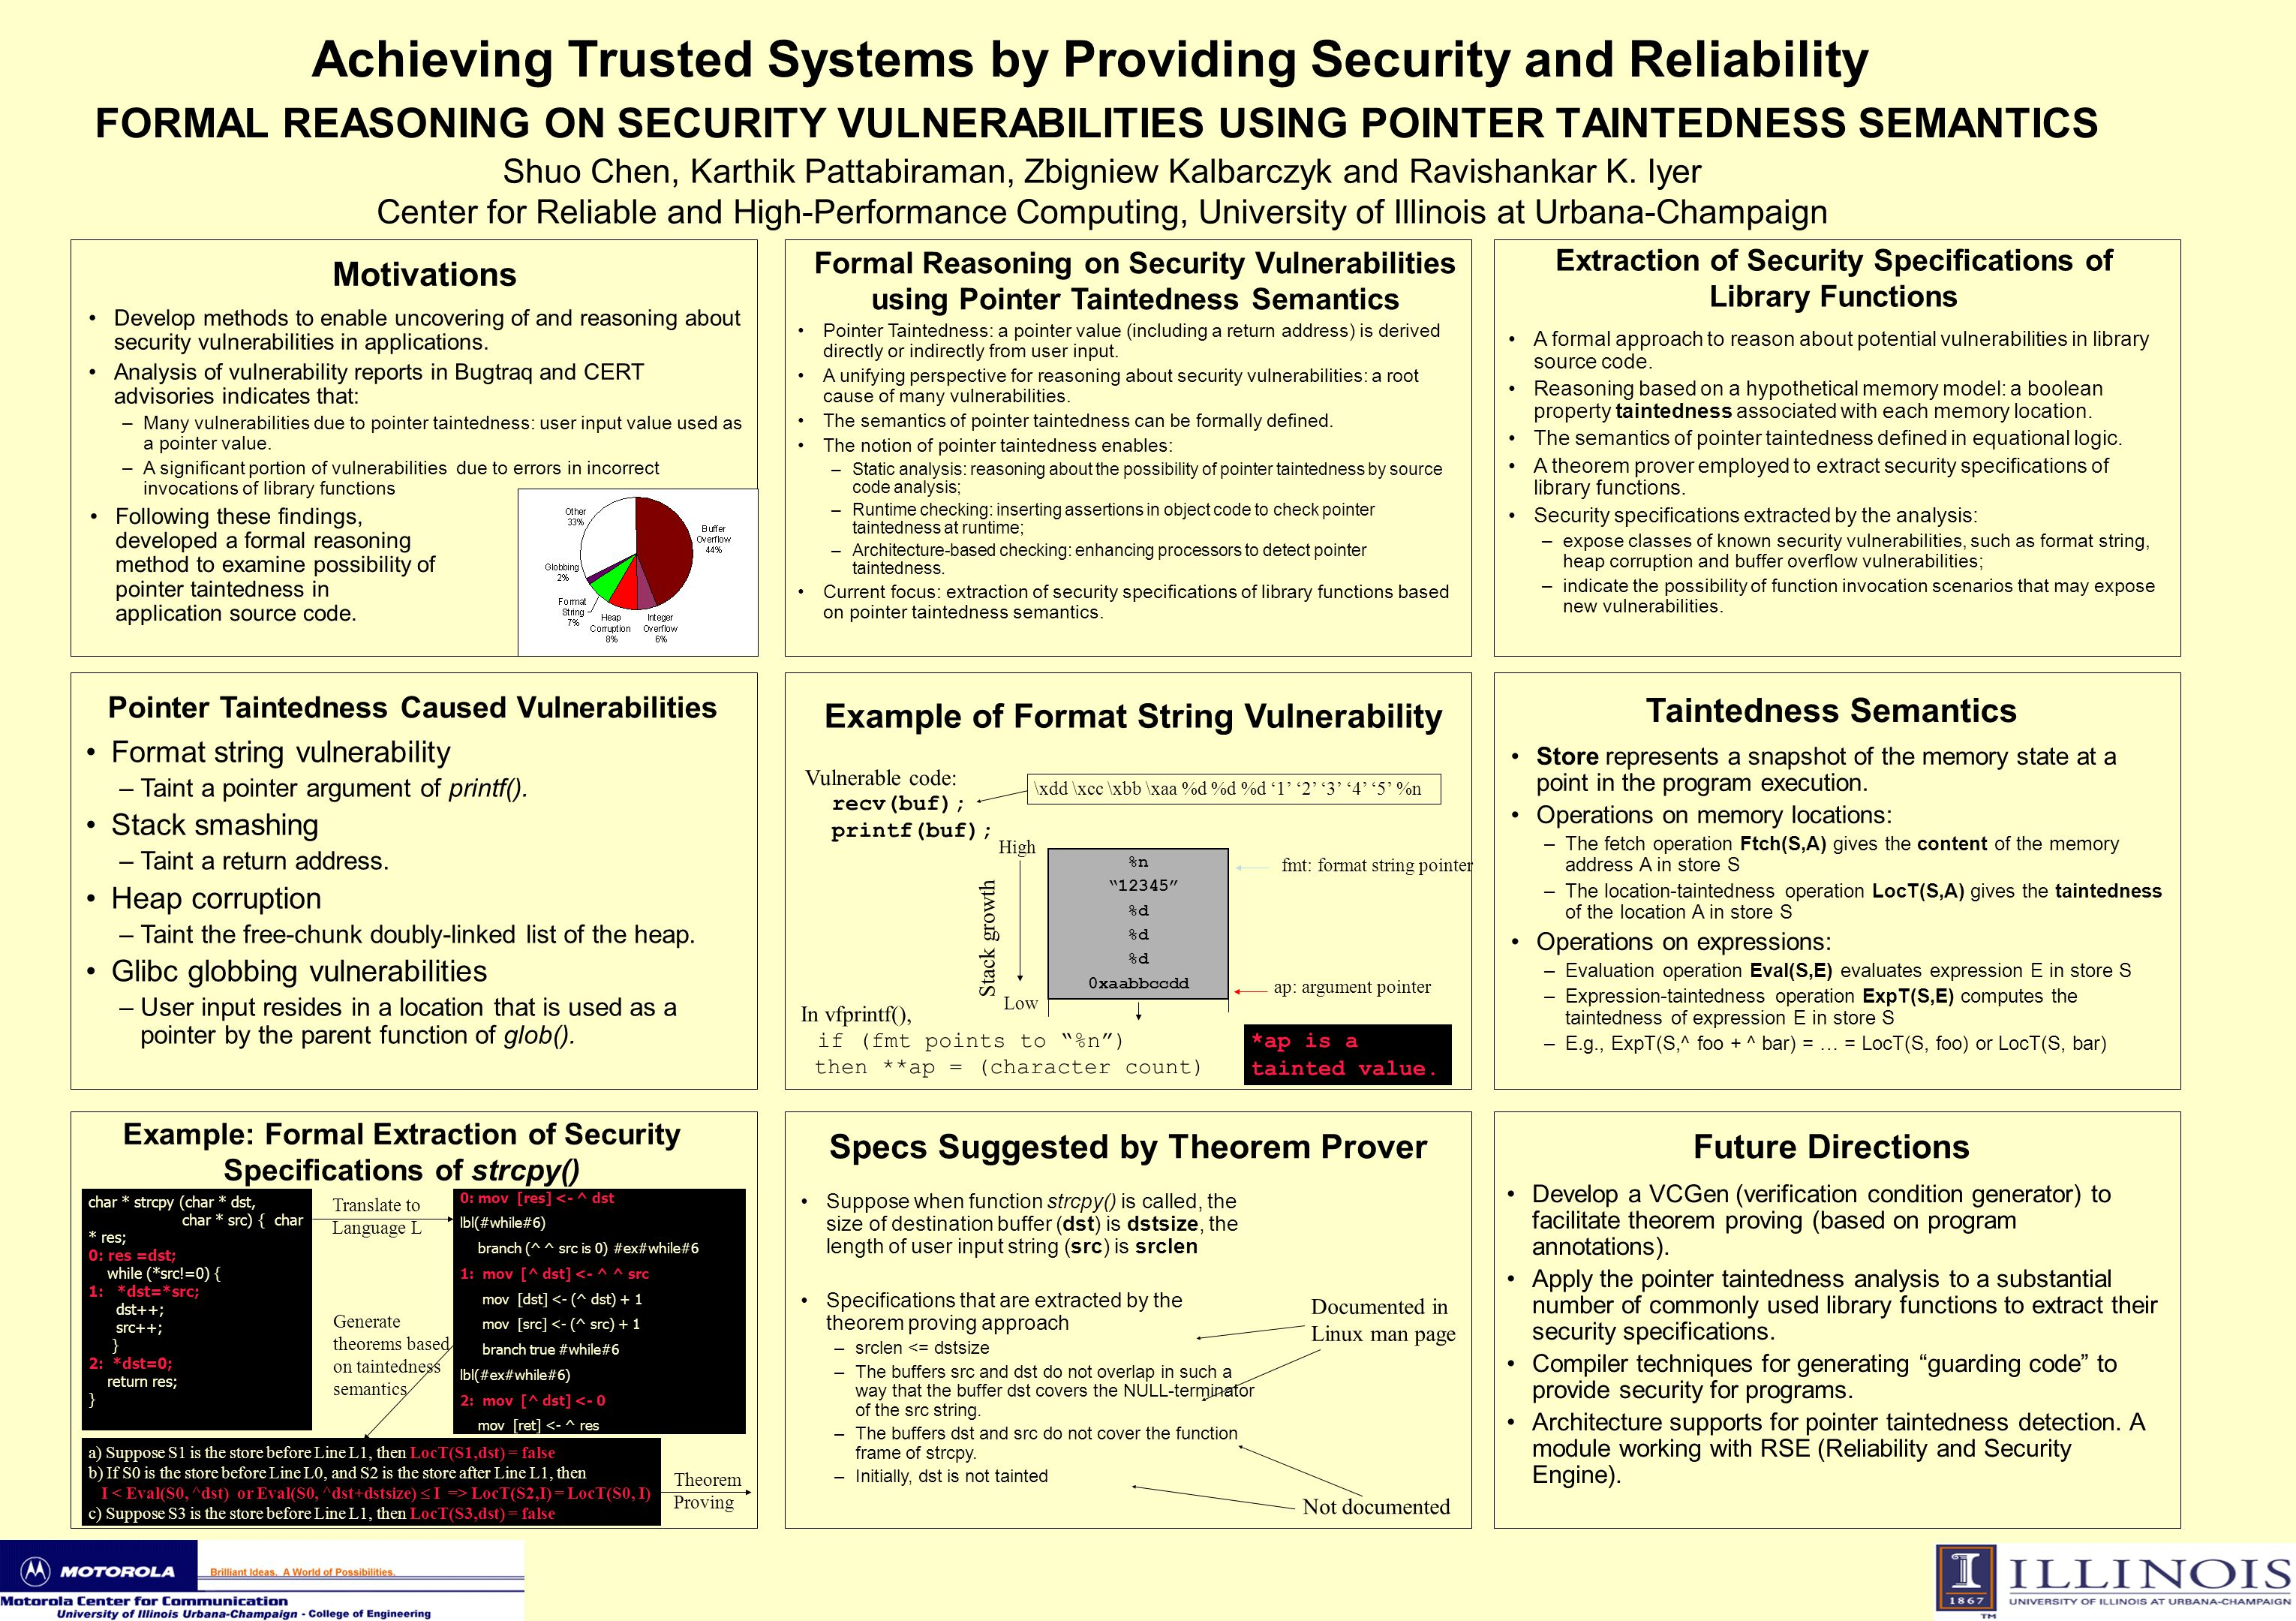 In vfprintf(), if (fmt points to %n ) then **ap = (character count) Achieving Trusted Systems by Providing Security and Reliability FORMAL REASONING ON SECURITY VULNERABILITIES USING POINTER TAINTEDNESS SEMANTICS Shuo Chen, Karthik Pattabiraman, Zbigniew Kalbarczyk and Ravishankar K.